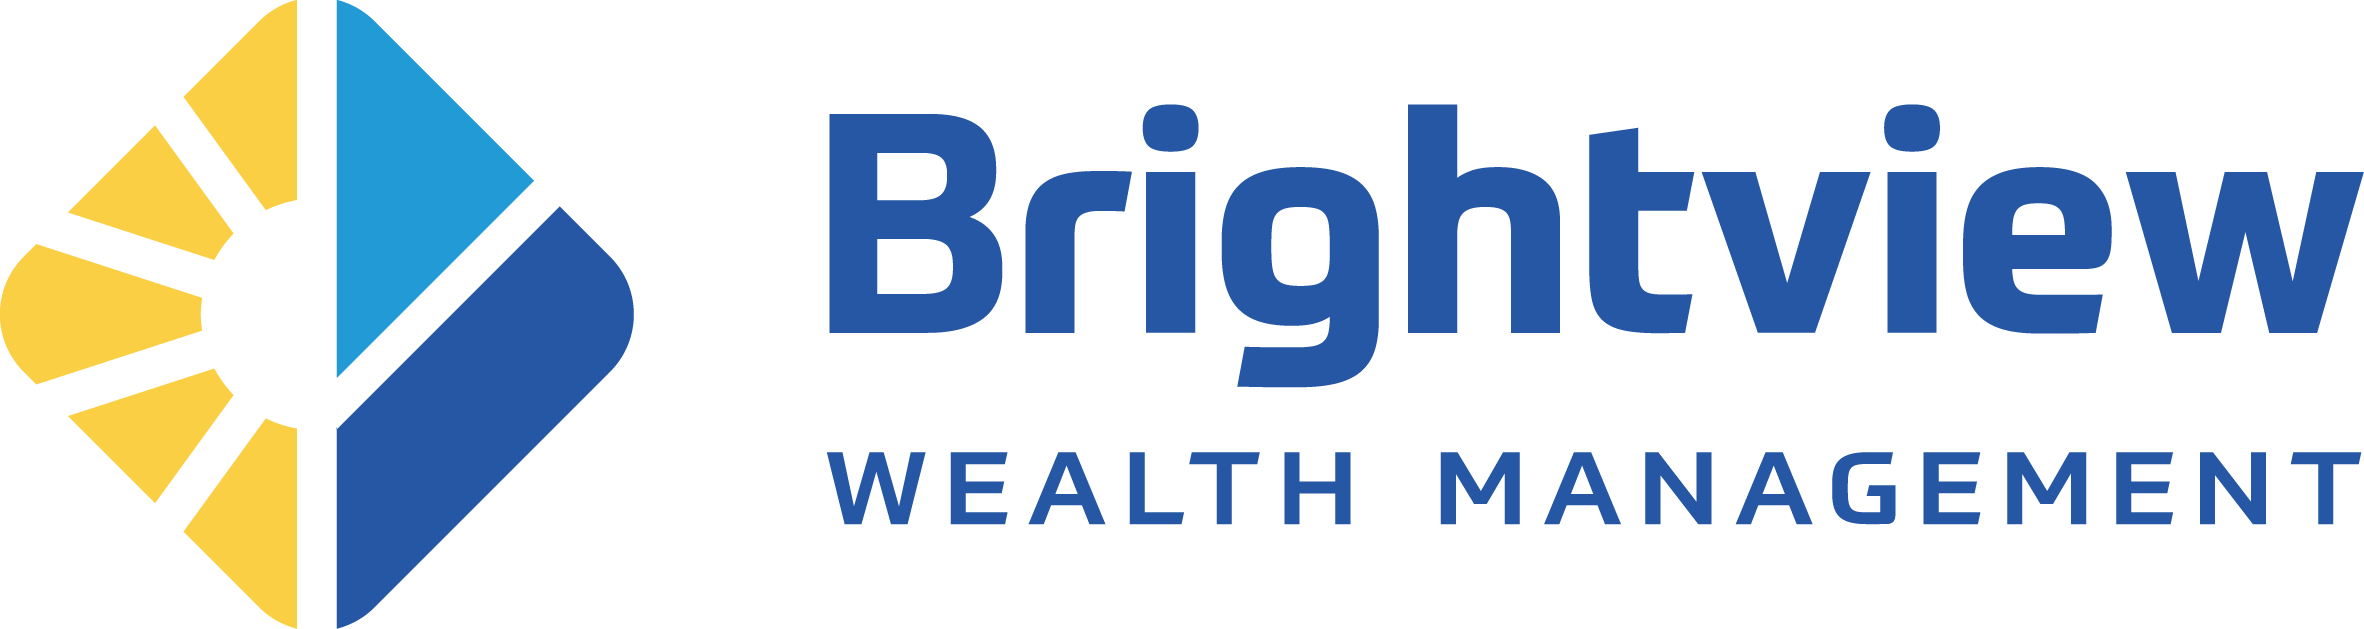 Brightview Wealth Management